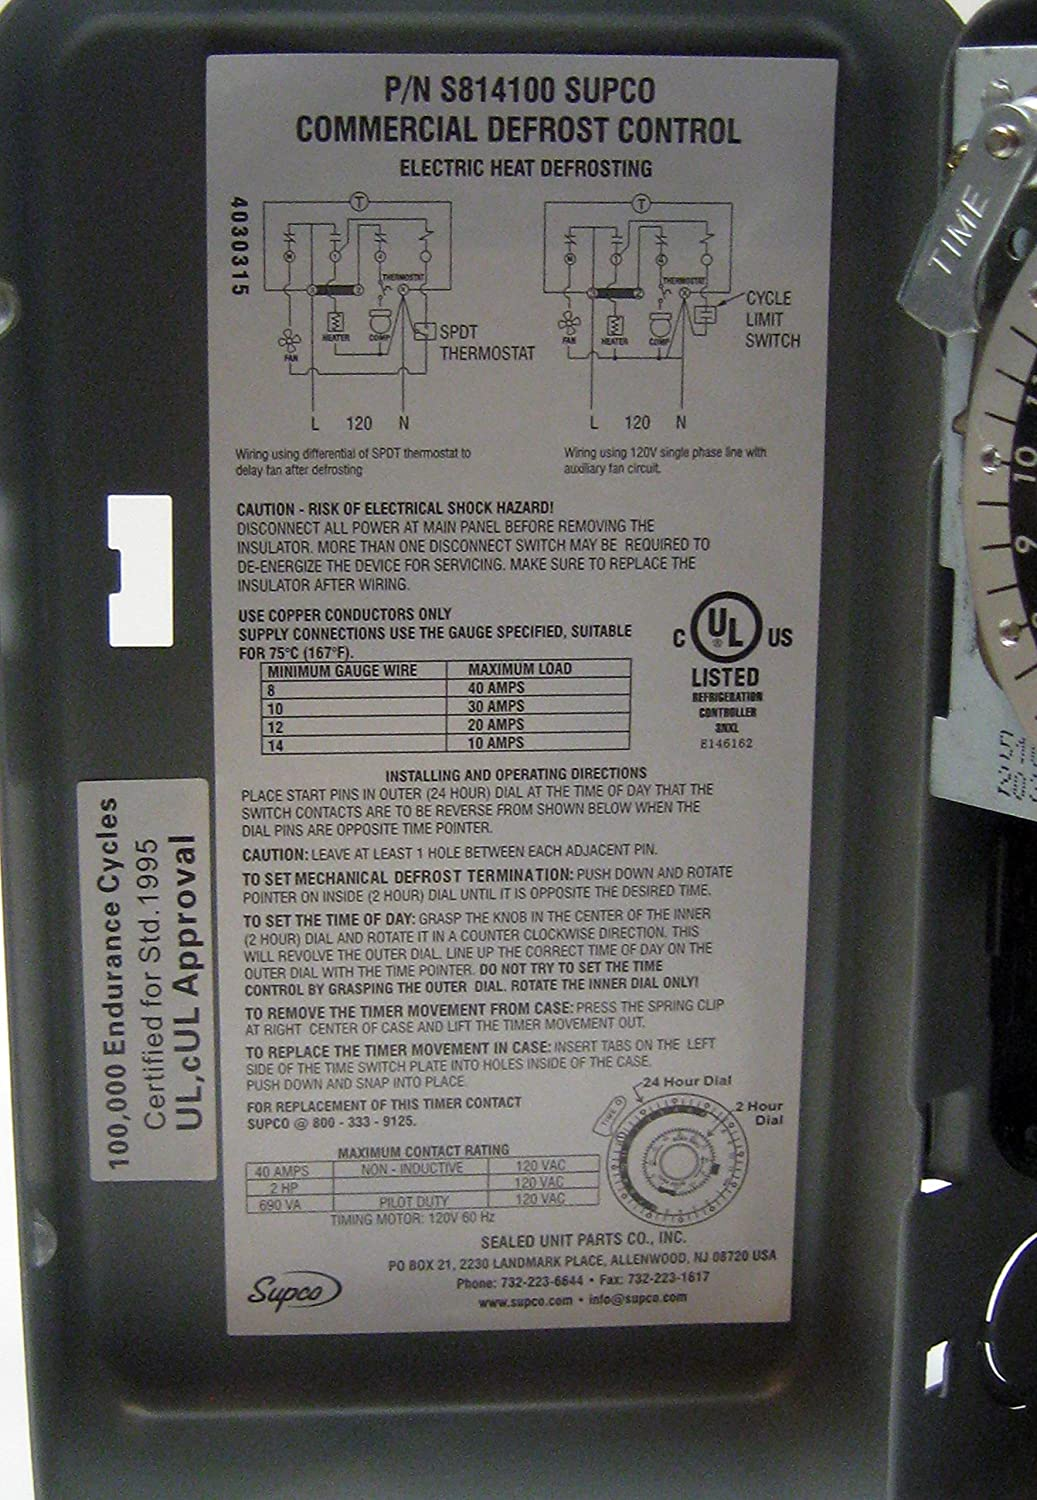 91cj992zkvL._SL1500_ amazon com supco s8141 00 complete commercial defrost timer paragon 8141 20 wiring diagram at bayanpartner.co